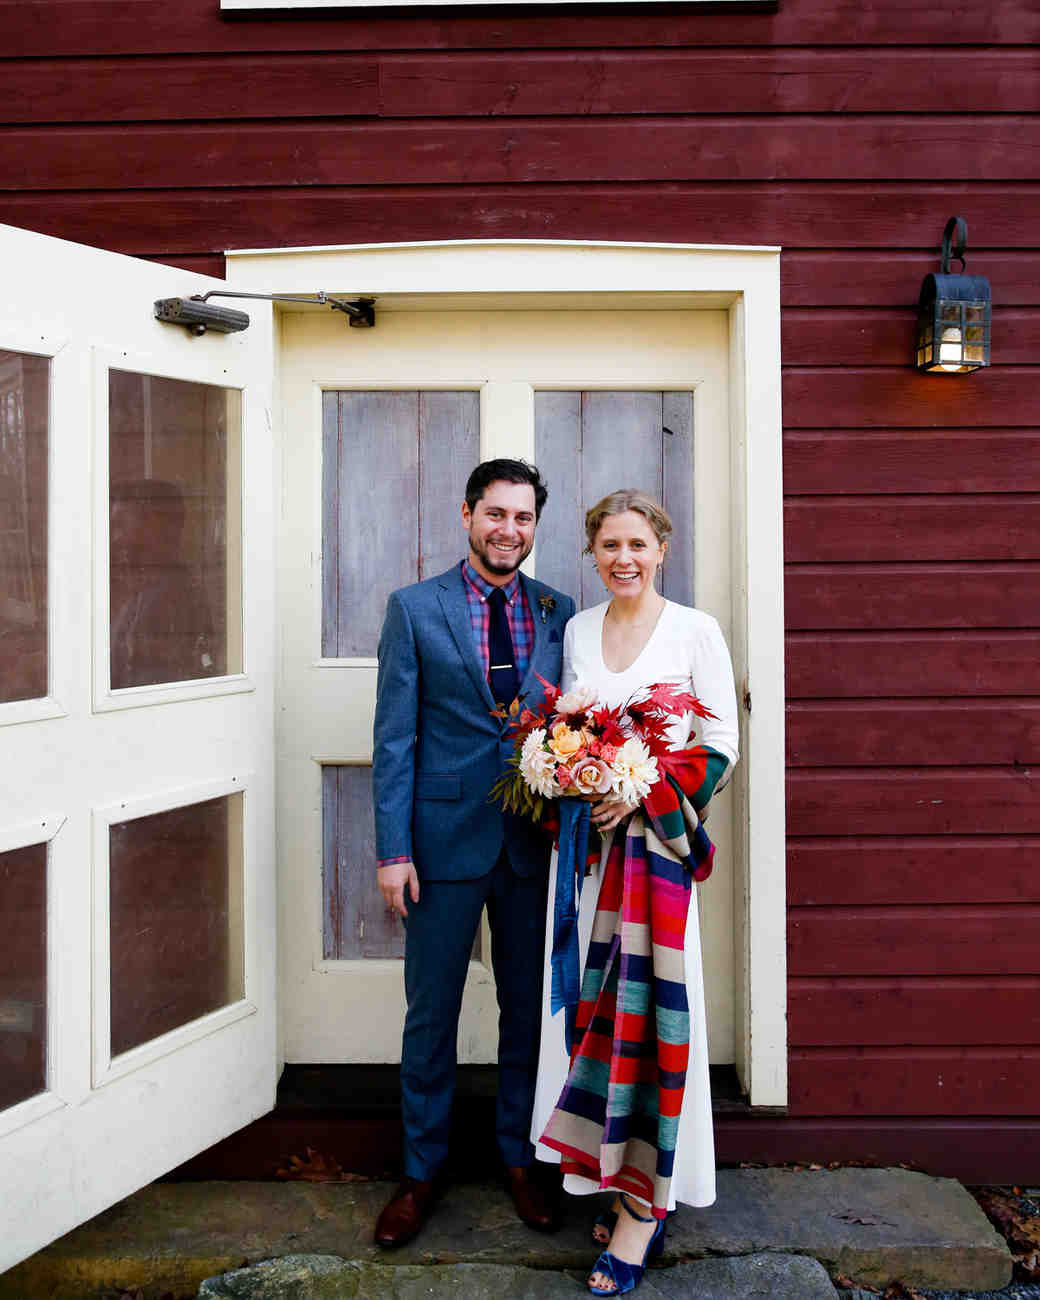 tory jonathan wedding couple in front of door